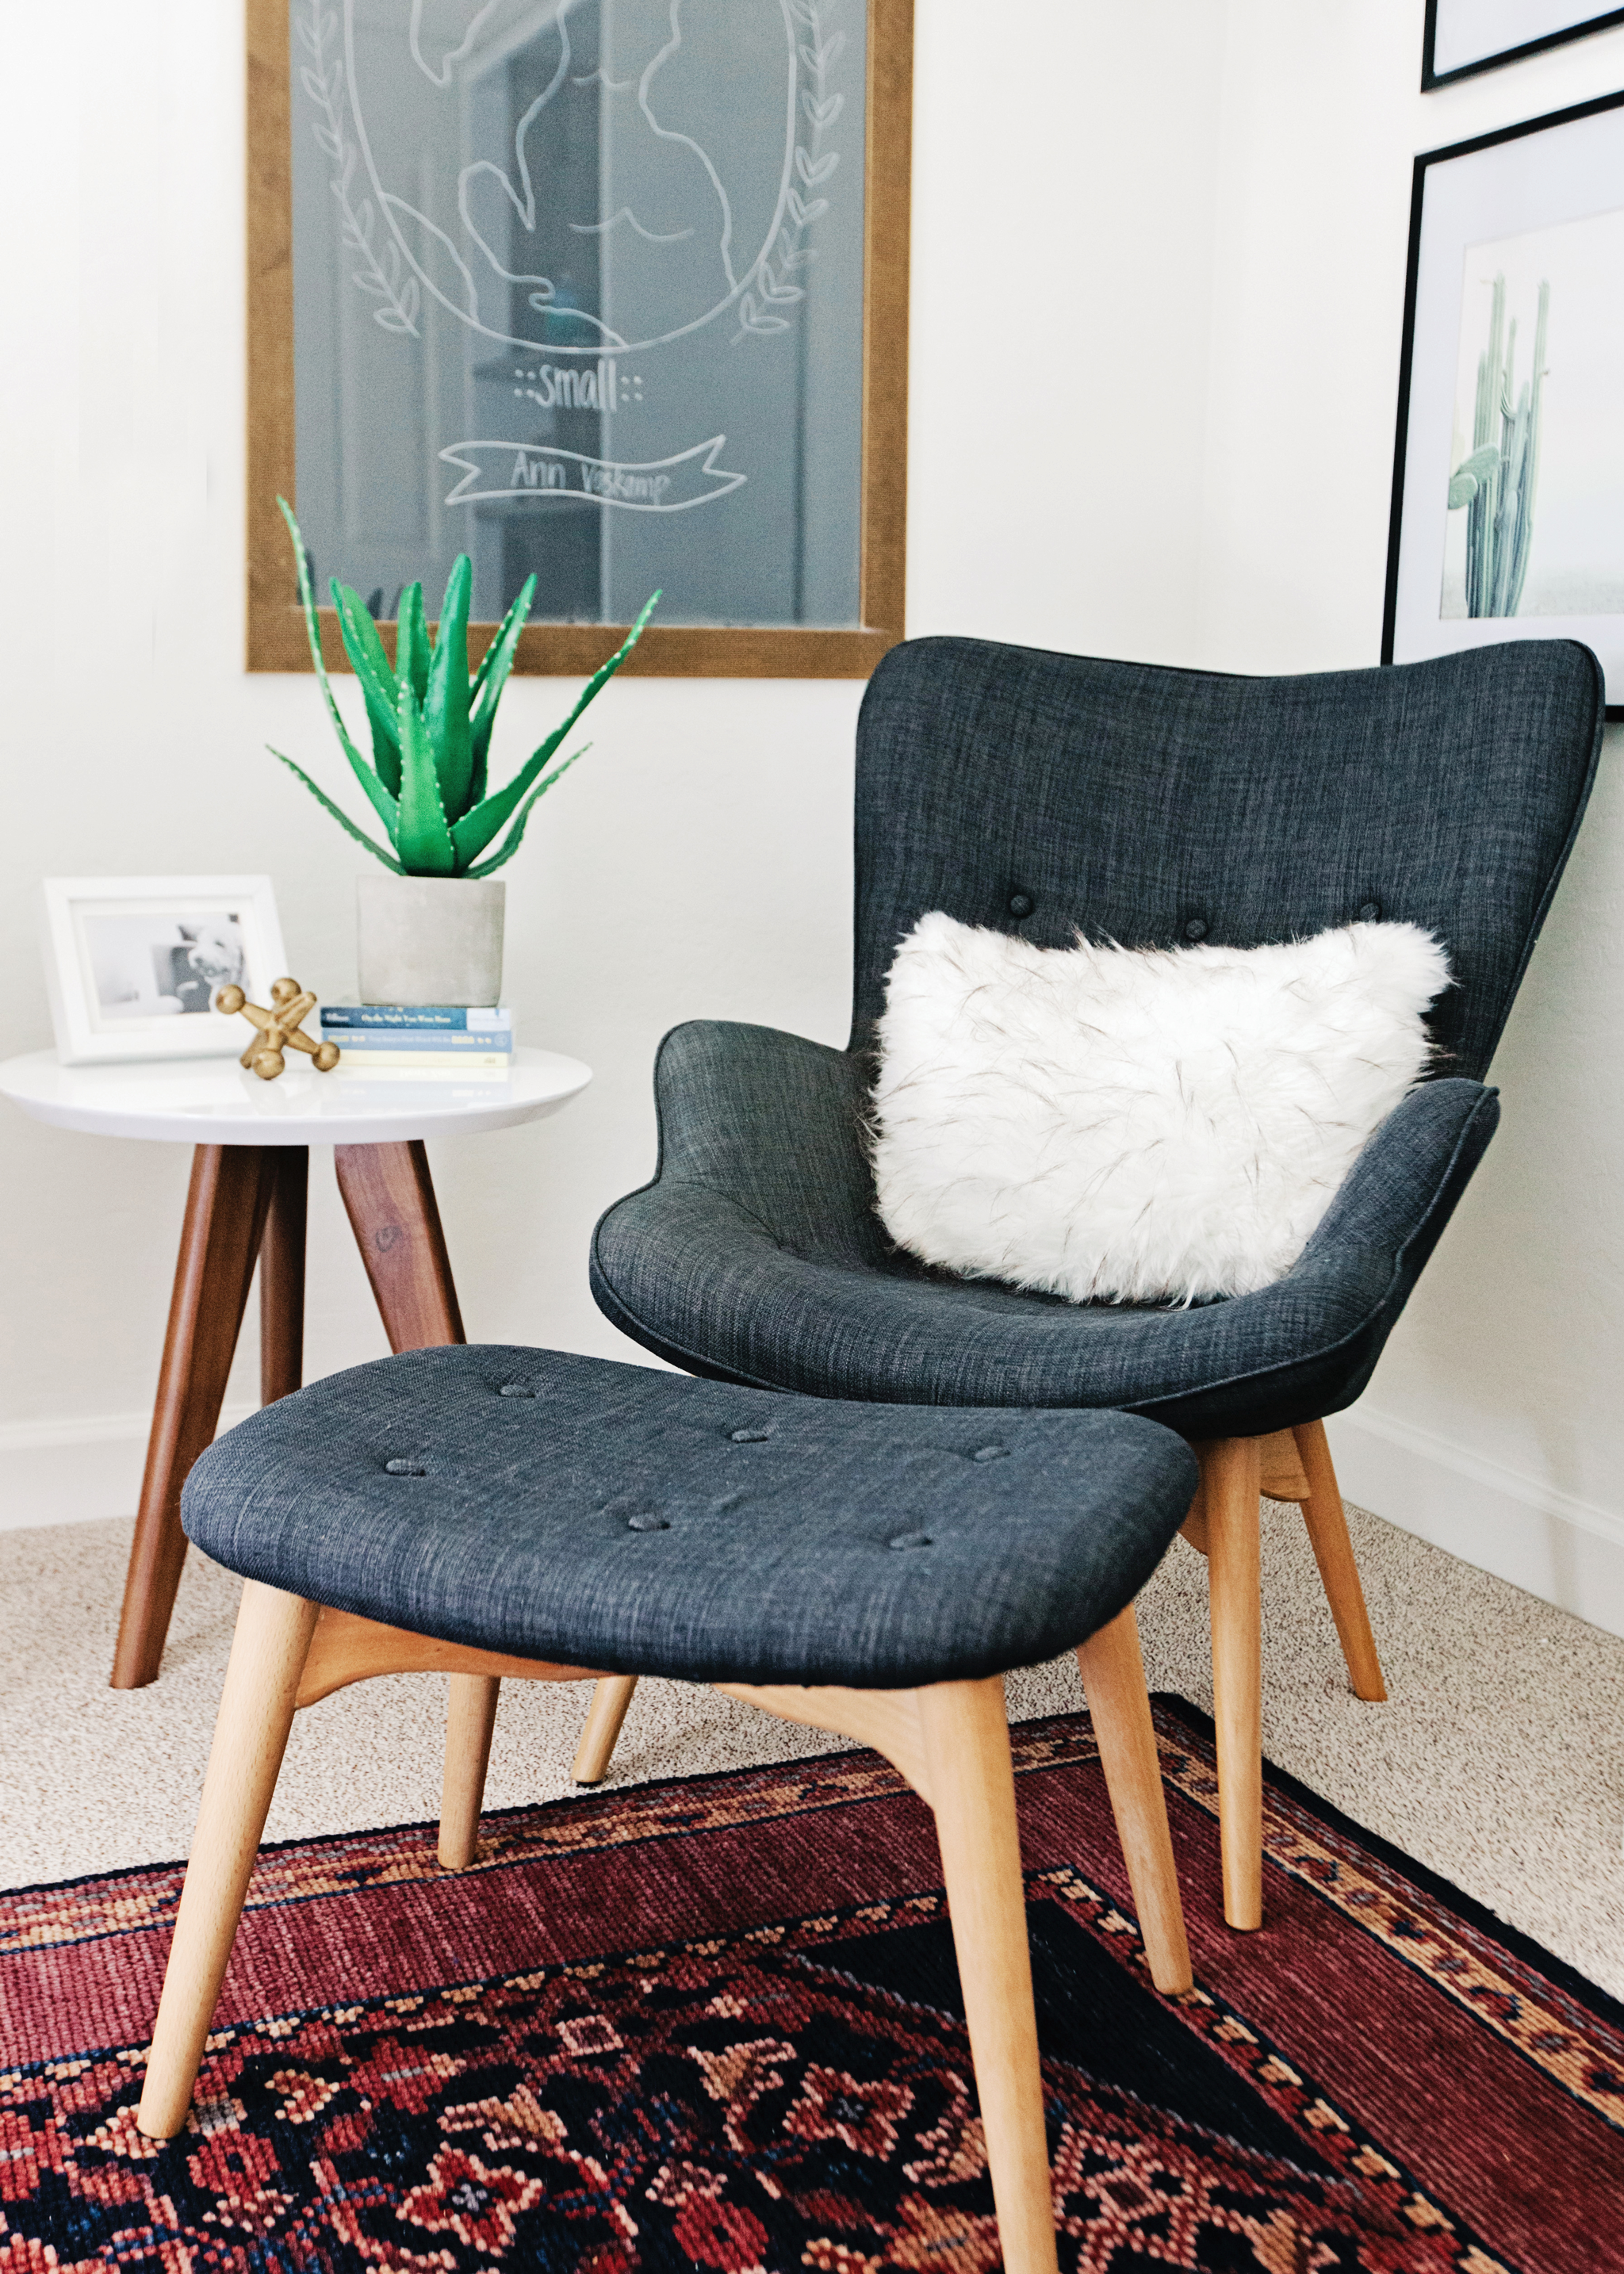 High Quality A Mid Century Modern Nursery Chair For Your Little Oneu0027s Space. Transform  This Space Into A Reading Nook For Later When They Are Old Enough For  Bedtime ...